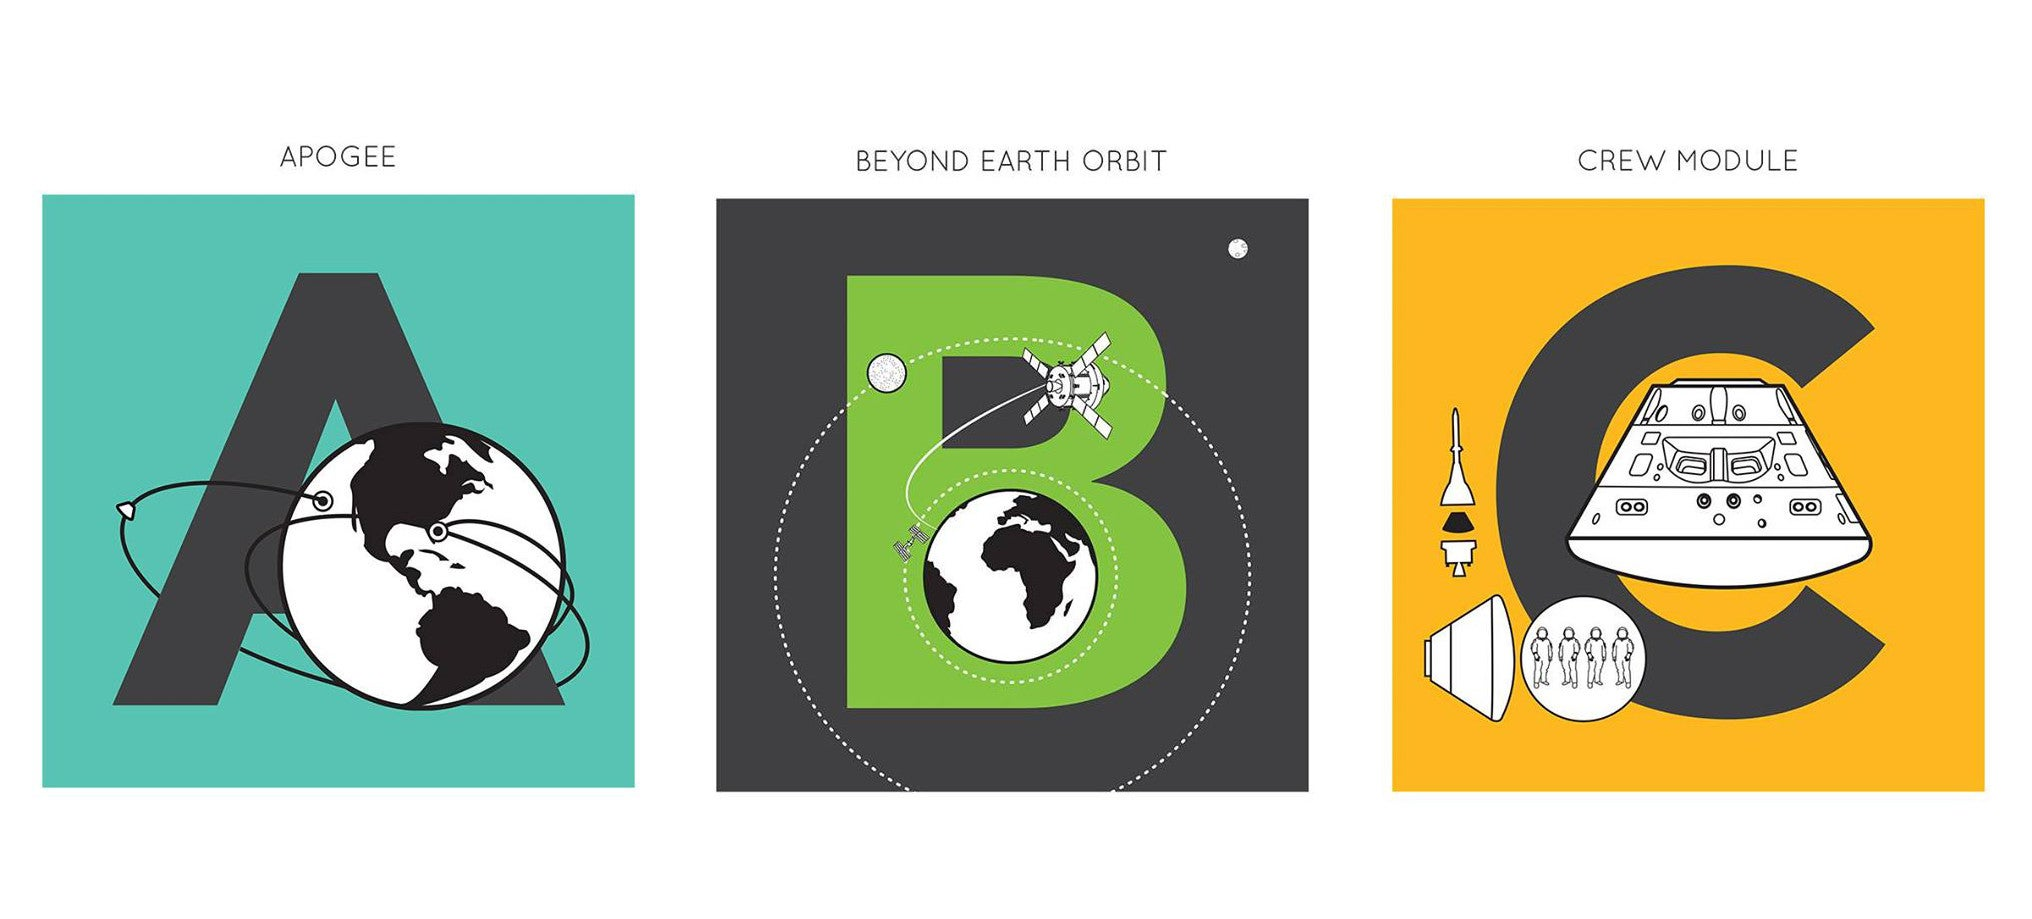 Learn The A-To-Z Of Space Travel With NASA's Orion Spacecraft